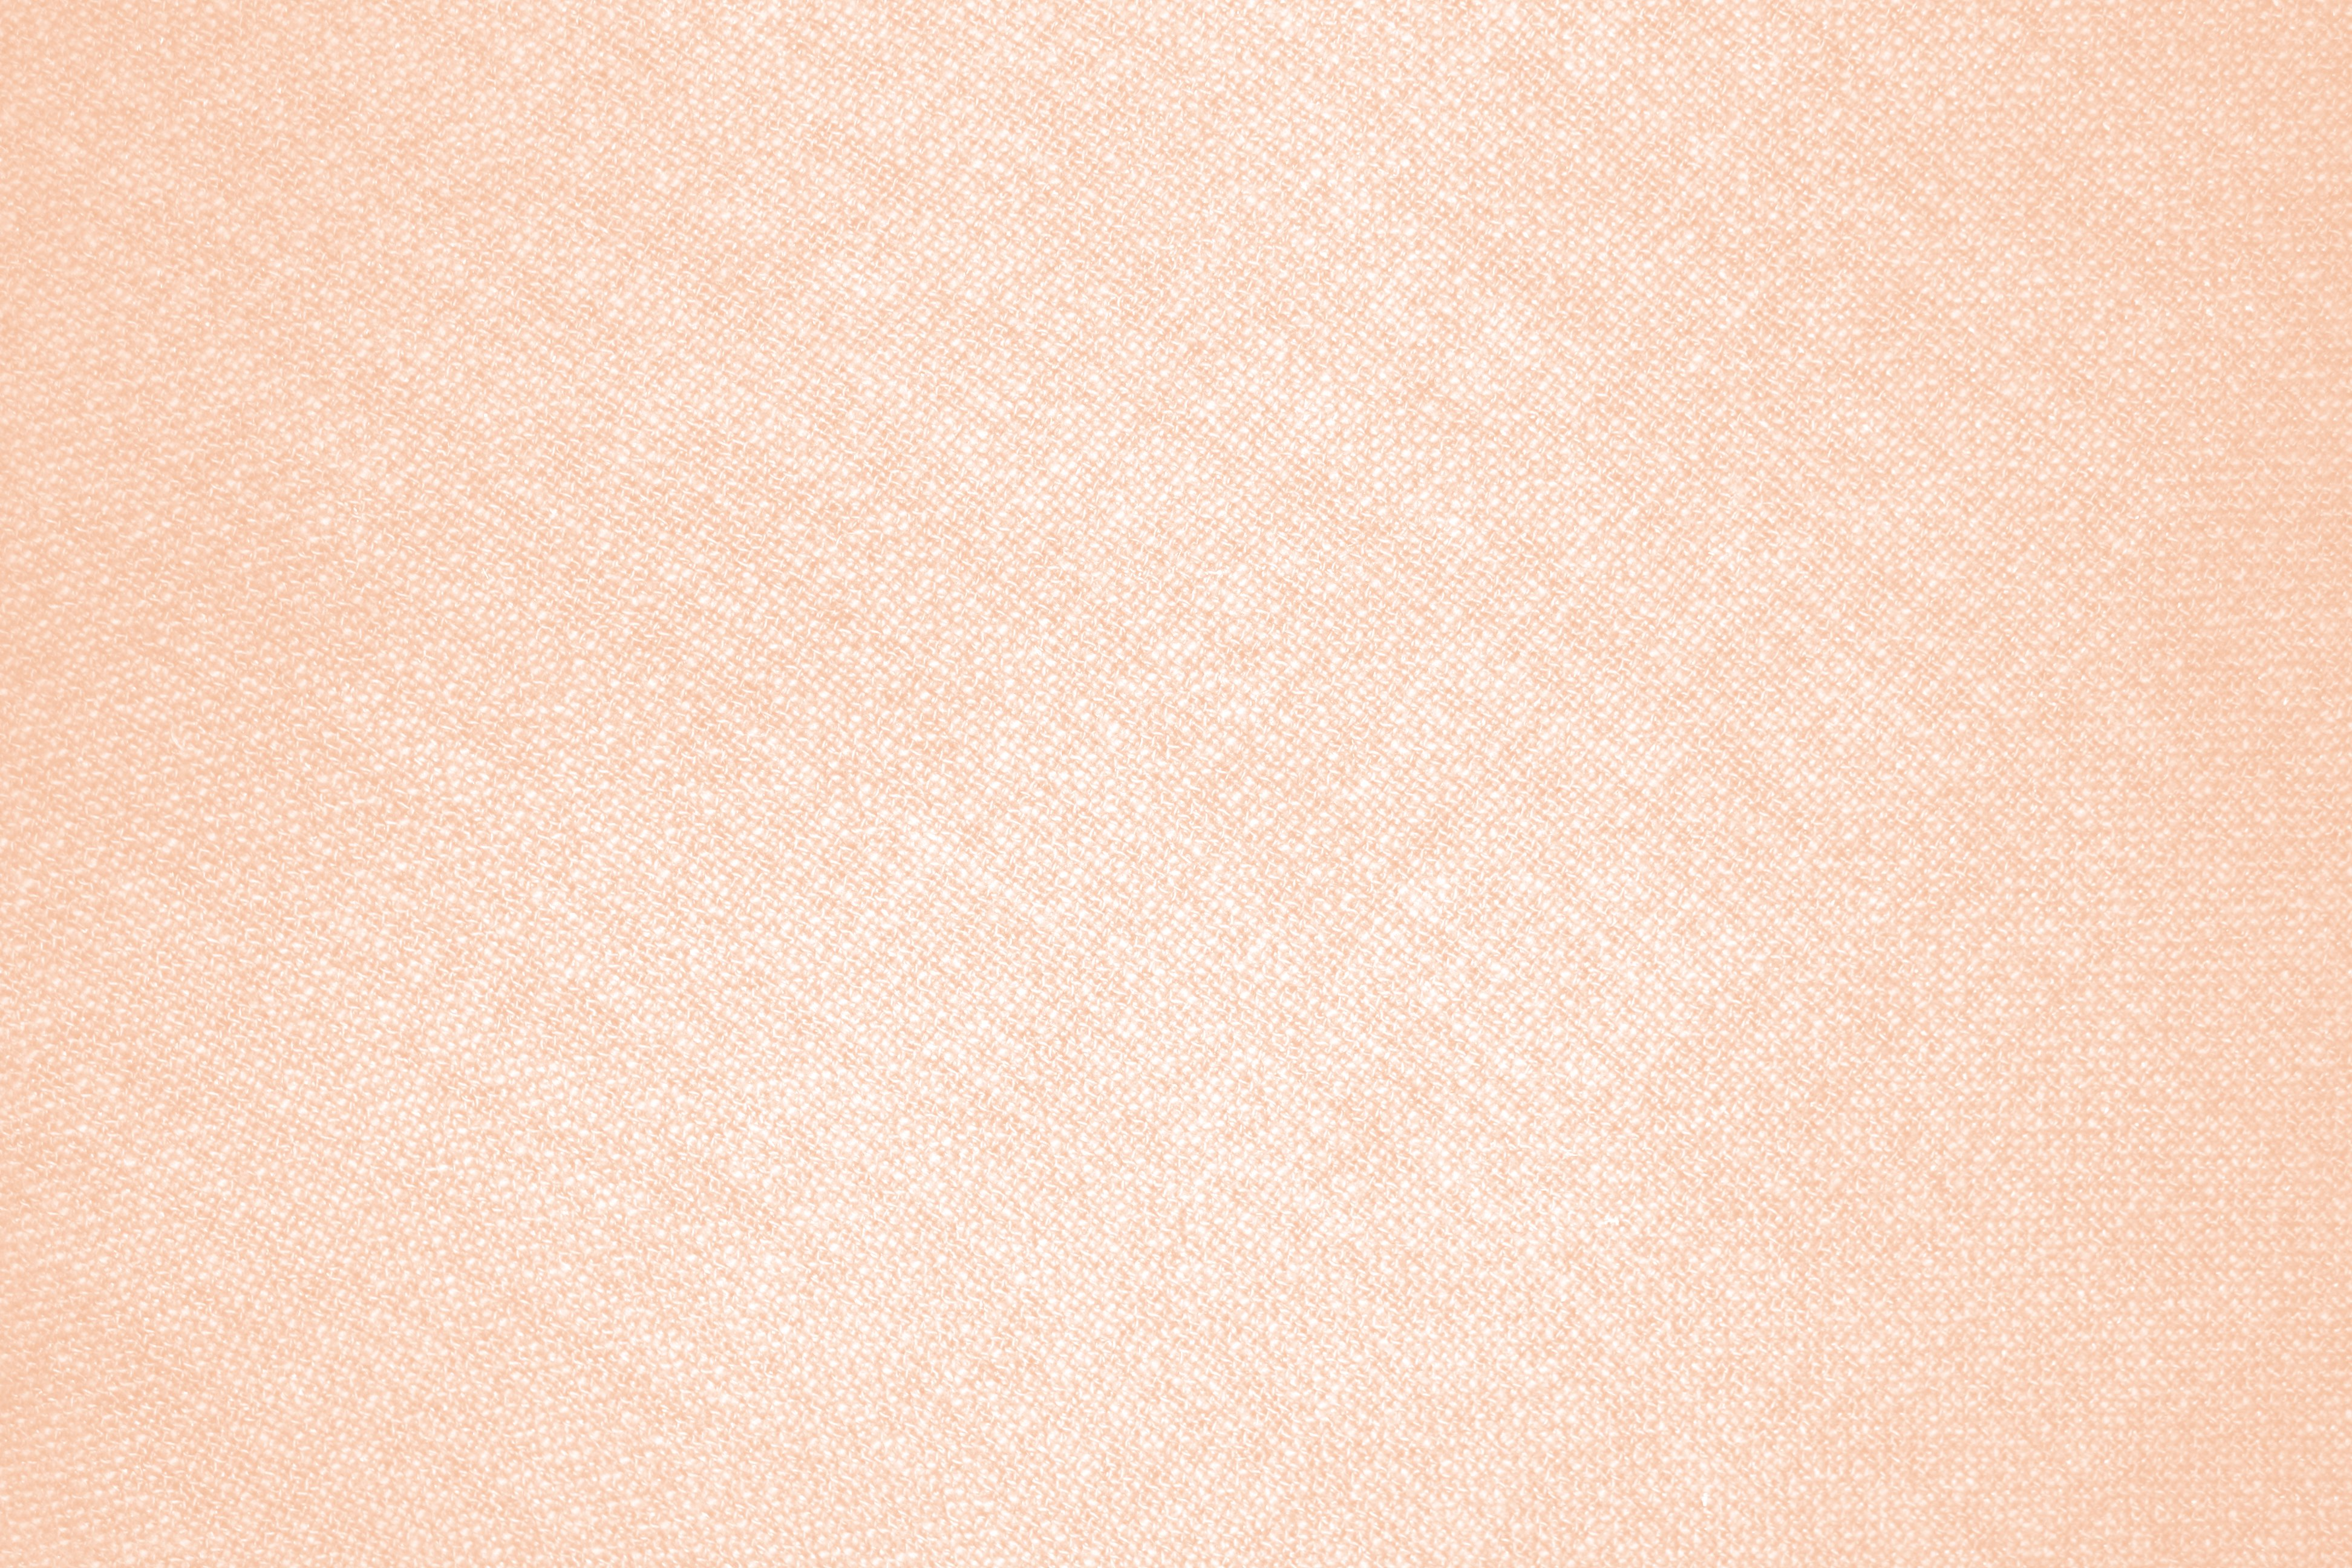 peach colored fabric texture picture free photograph